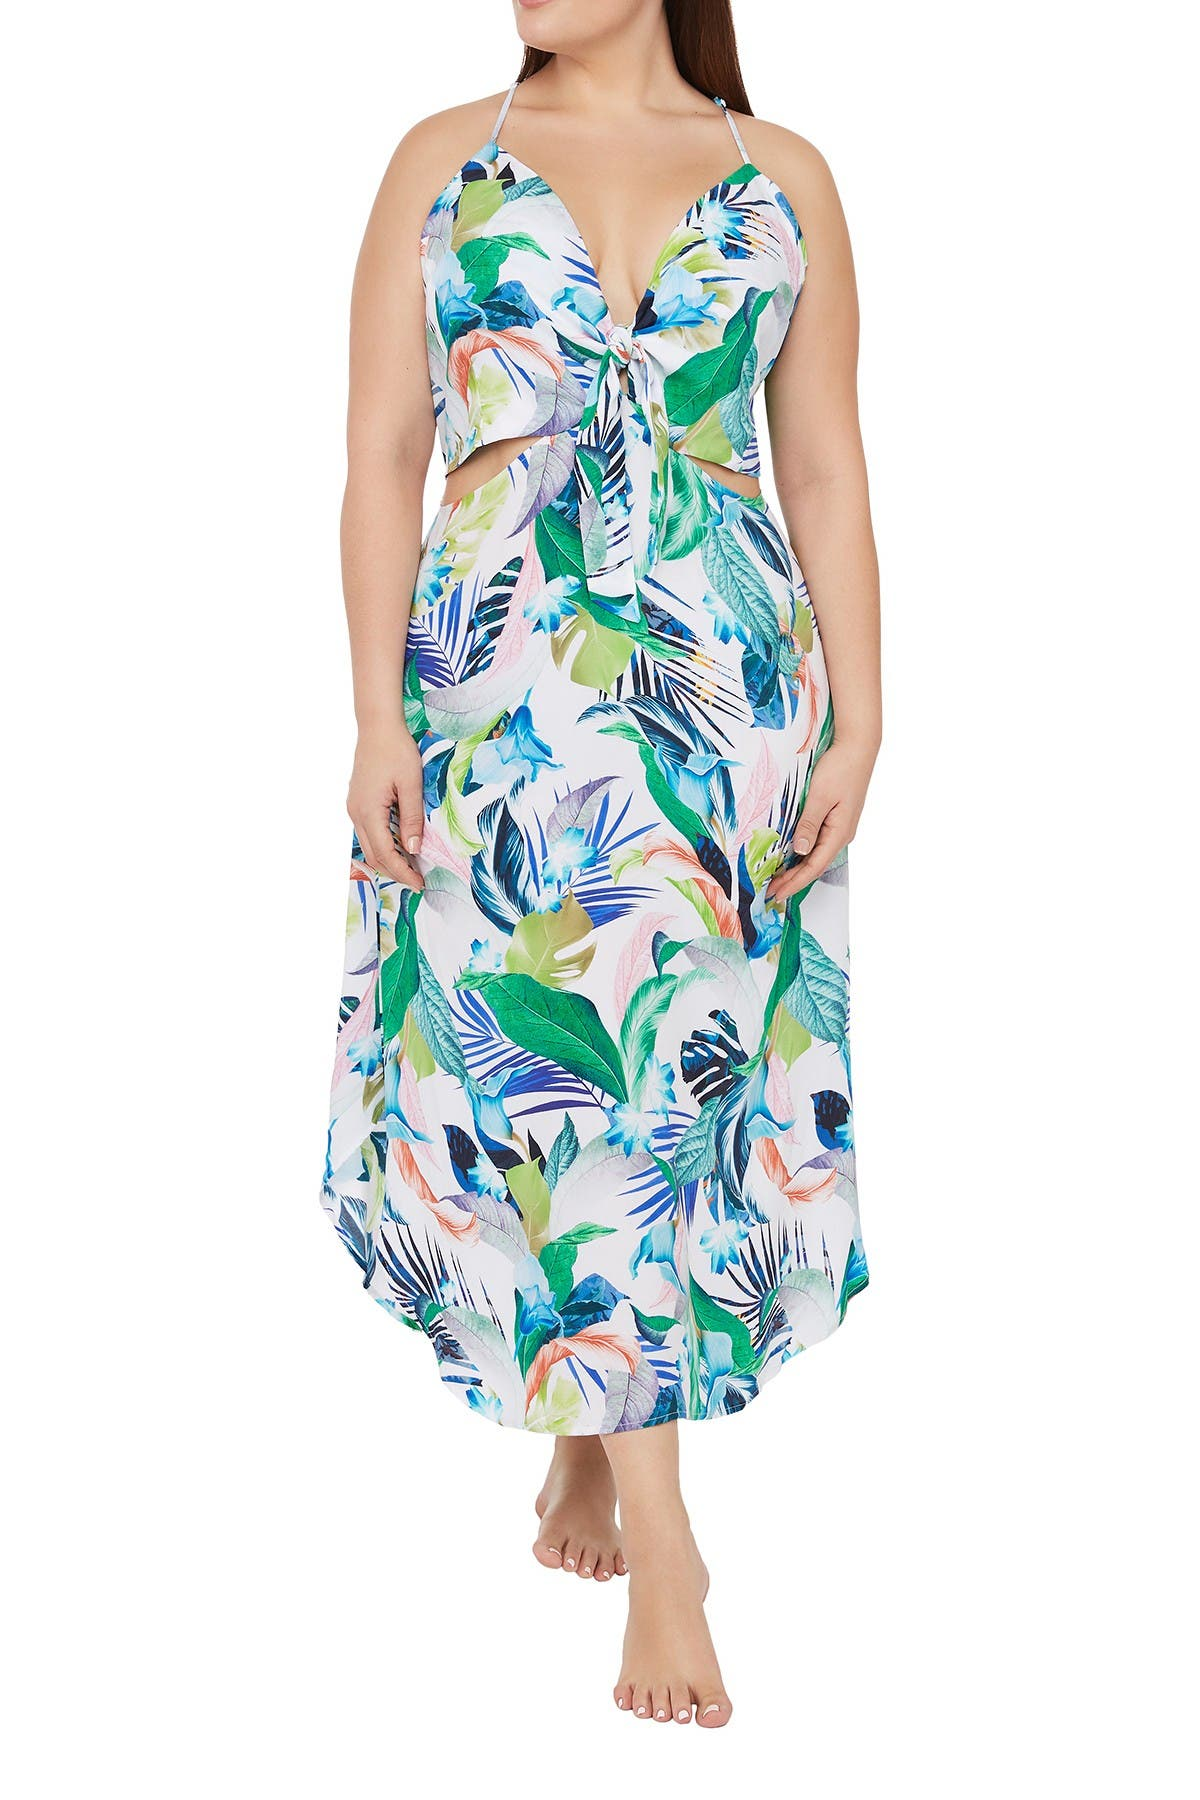 Image of La Blanca Swimwear Printed Tie Front Cover Up Dress